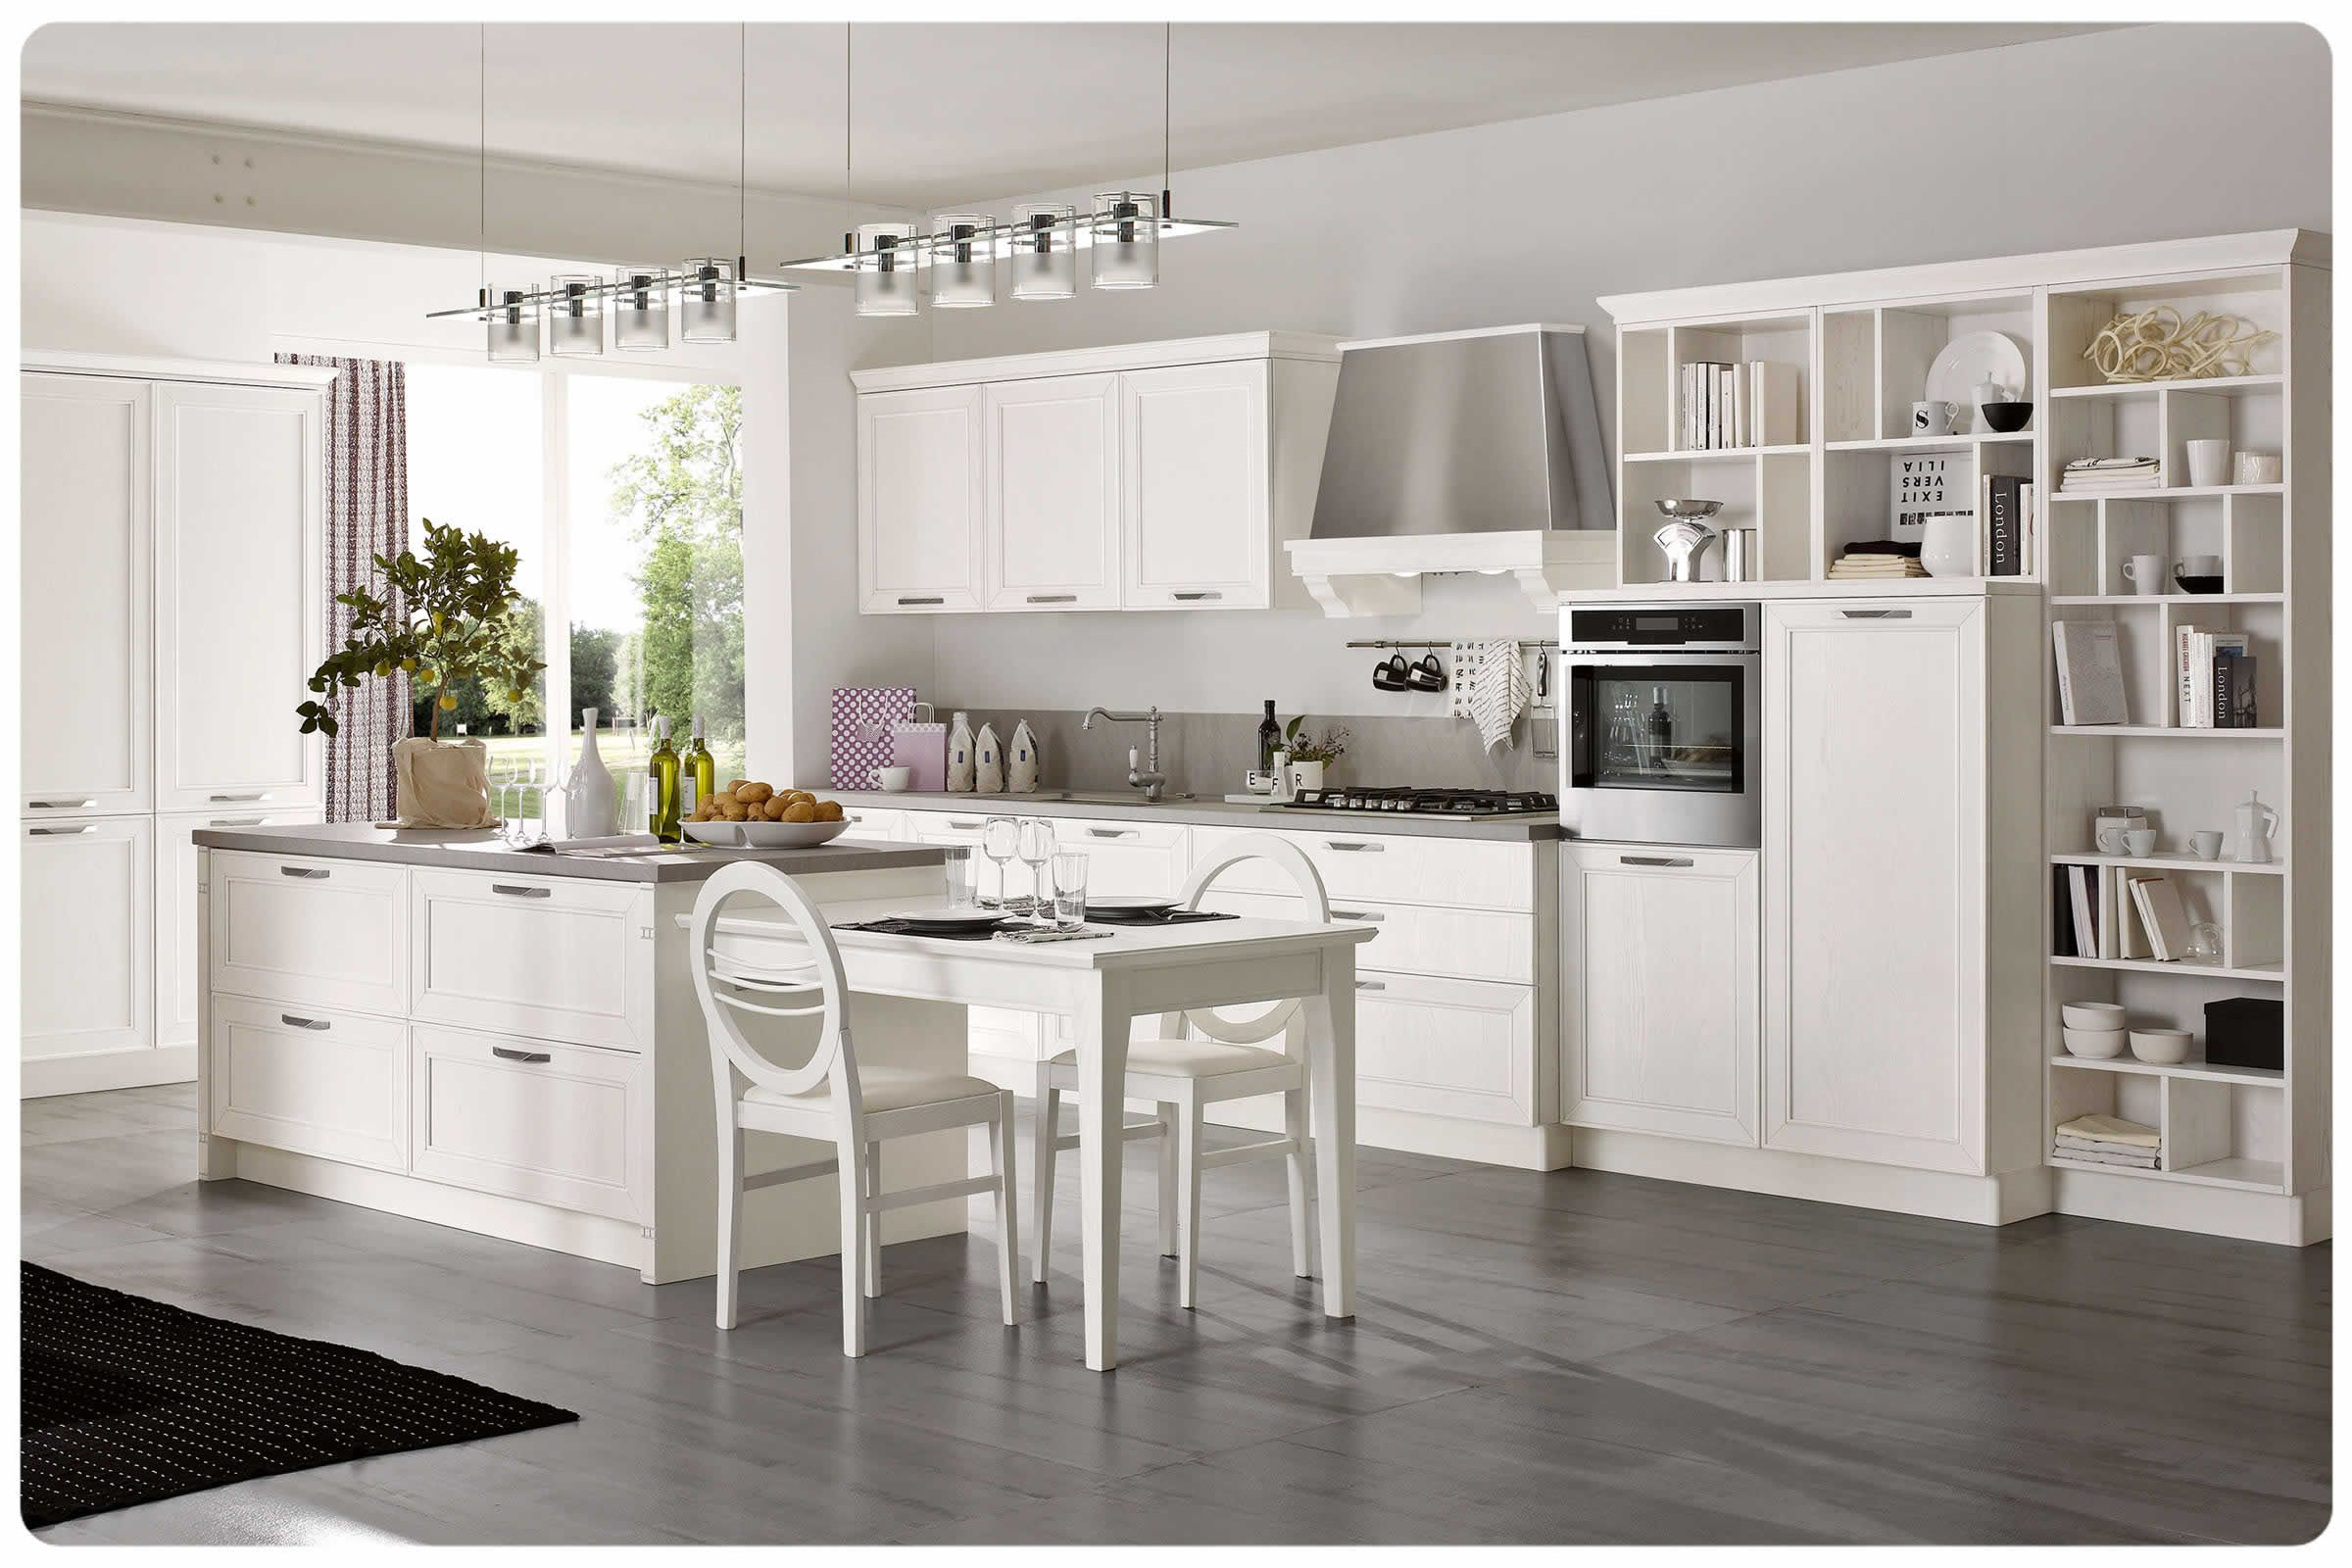 Cucine moderne componibili Stosa Maxim | Home Inspiration ...